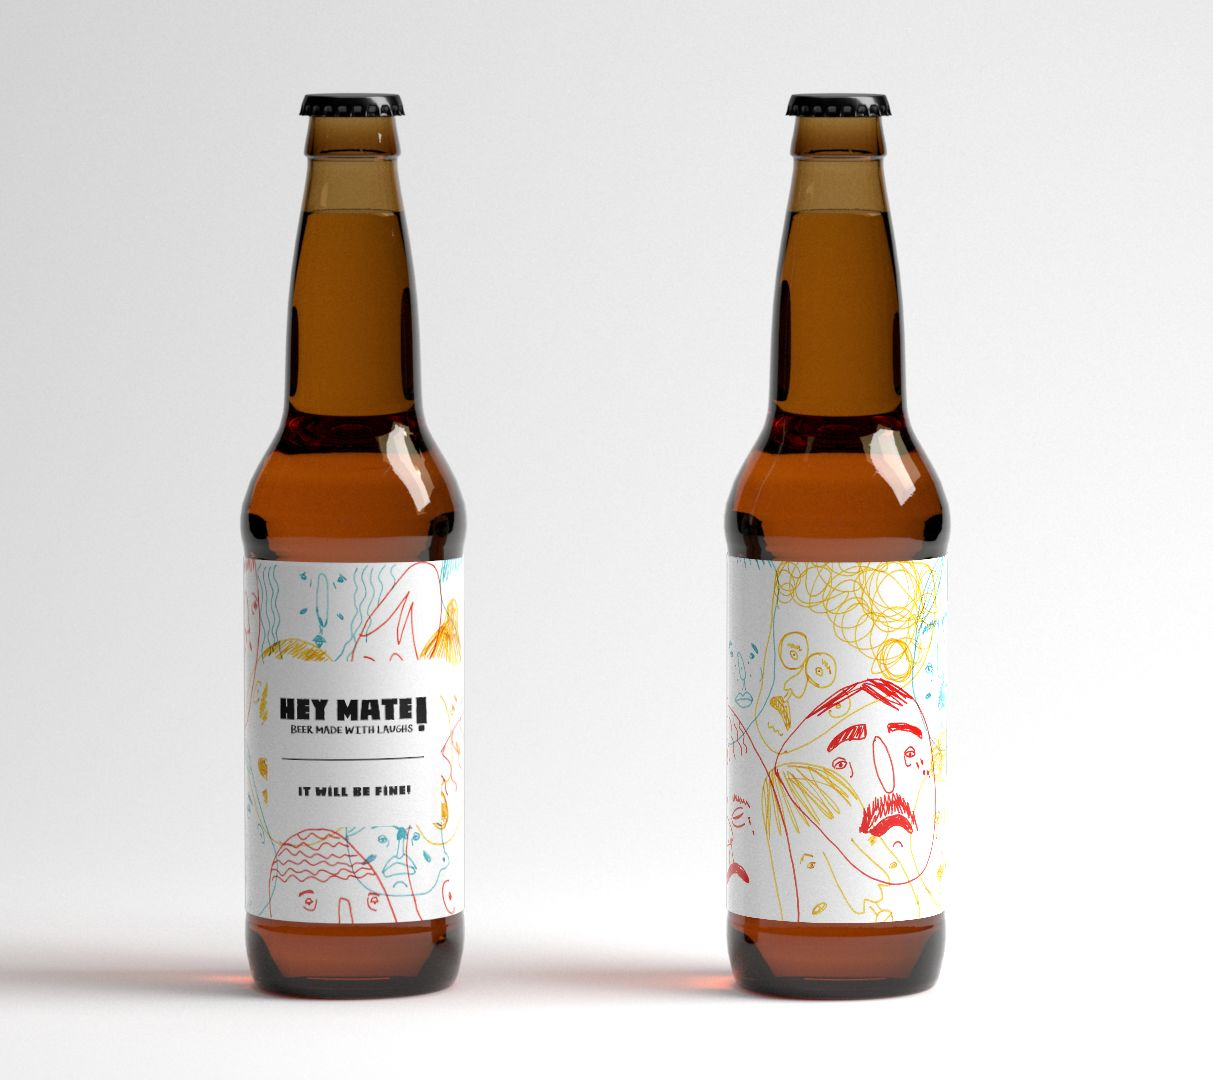 Hey mate! Beer made with Laughs